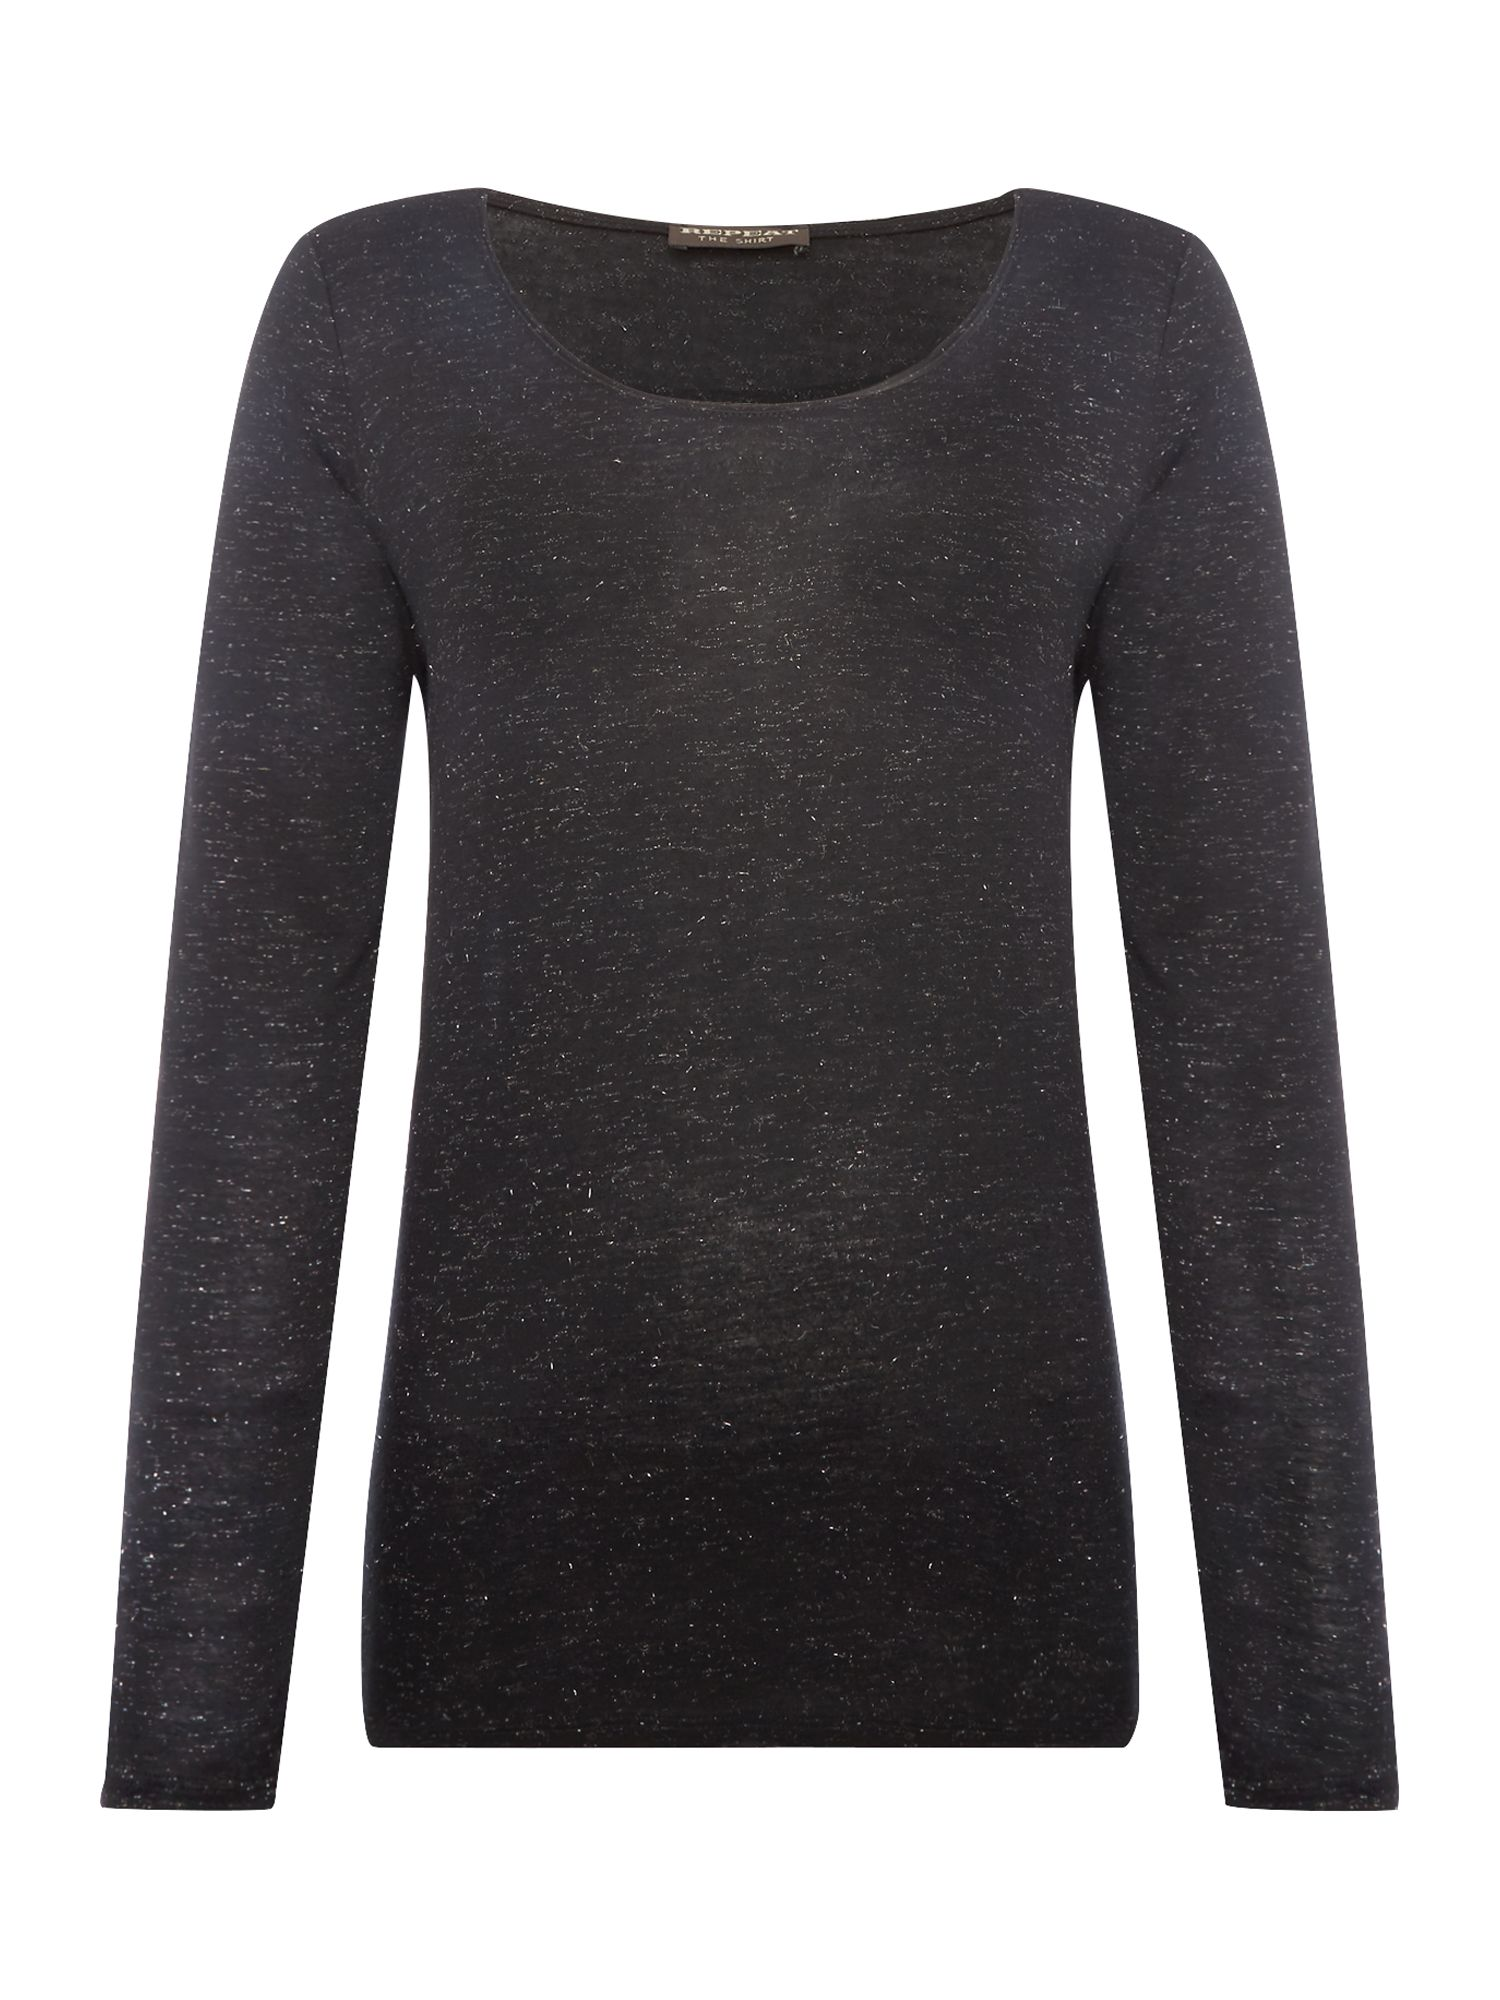 Repeat Cashmere Round neck long sleeve sparkle top, Black